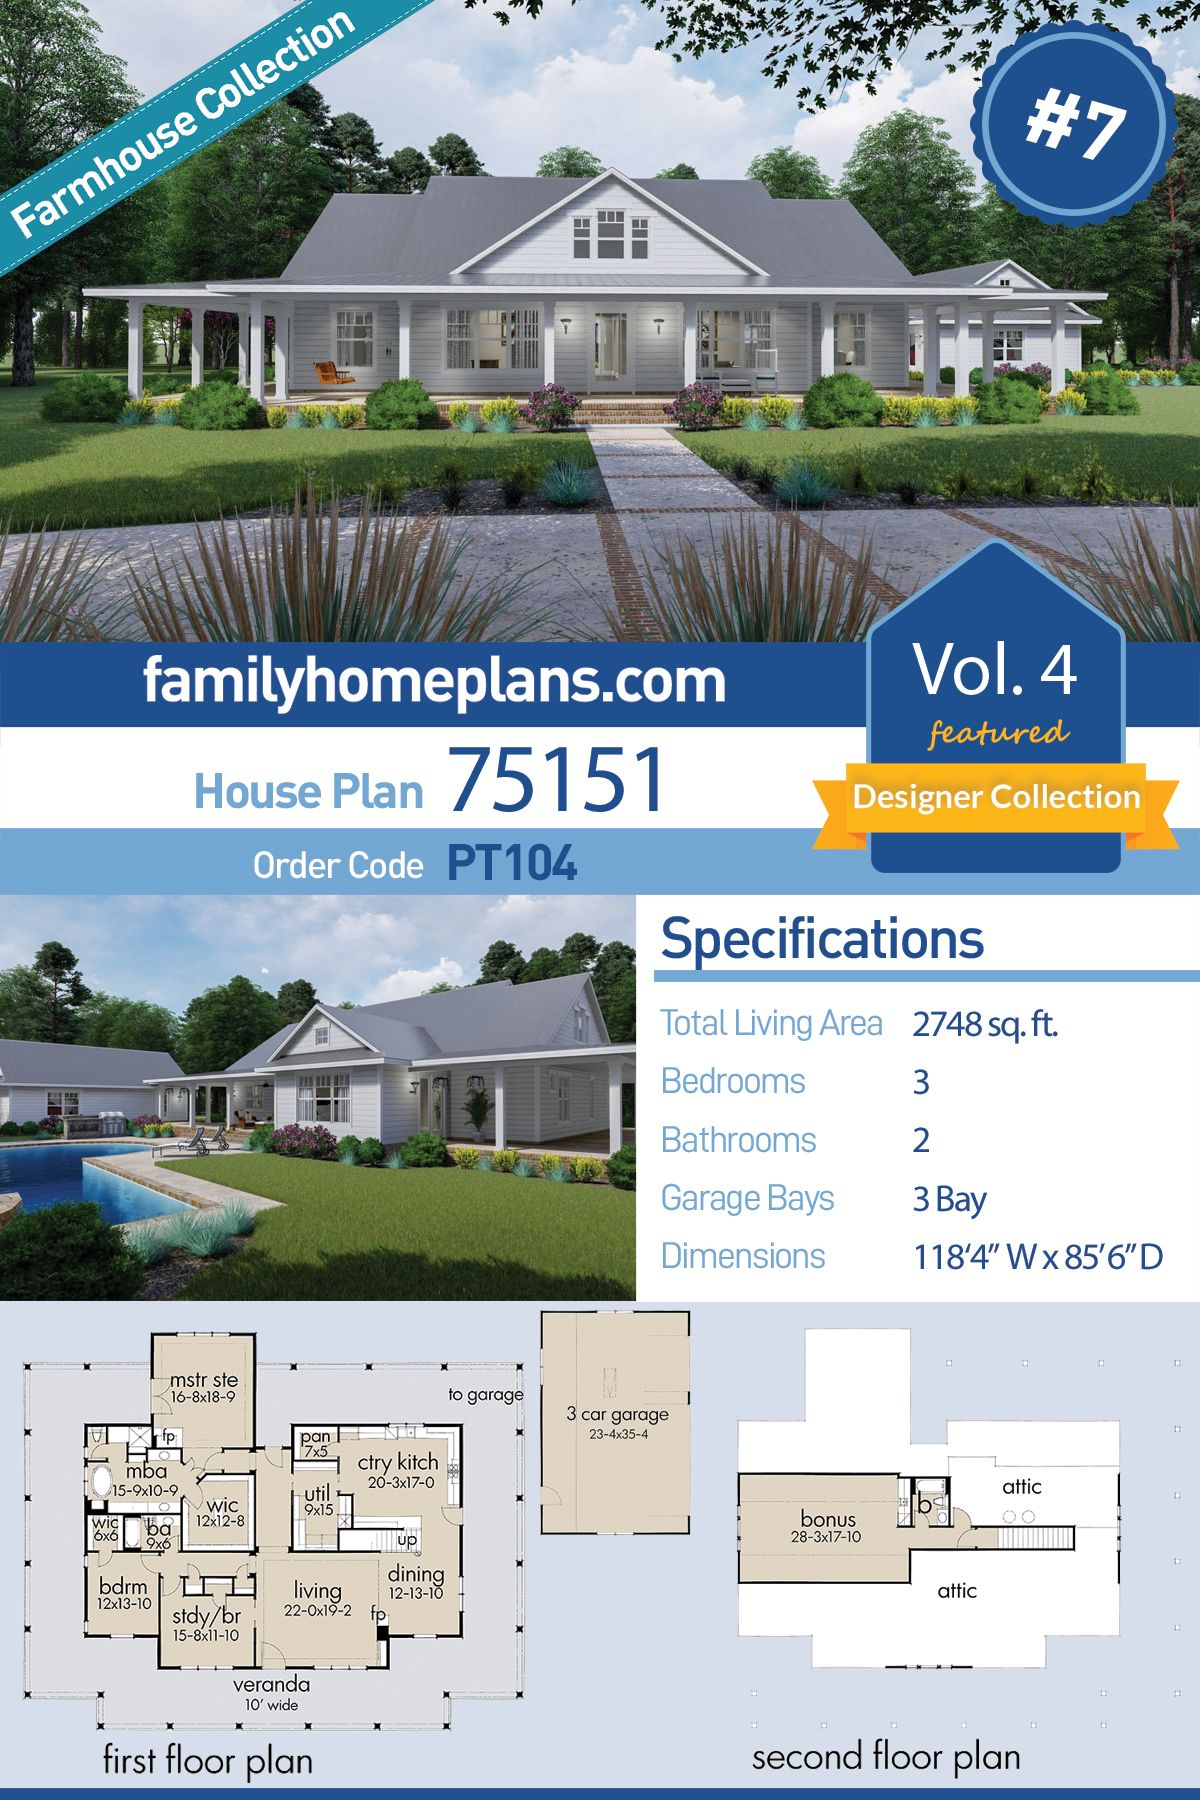 Southern Style House Plan 75151 With 3 Bed 2 Bath 3 Car Garage House Plans Farmhouse House Plans Country Style Homes